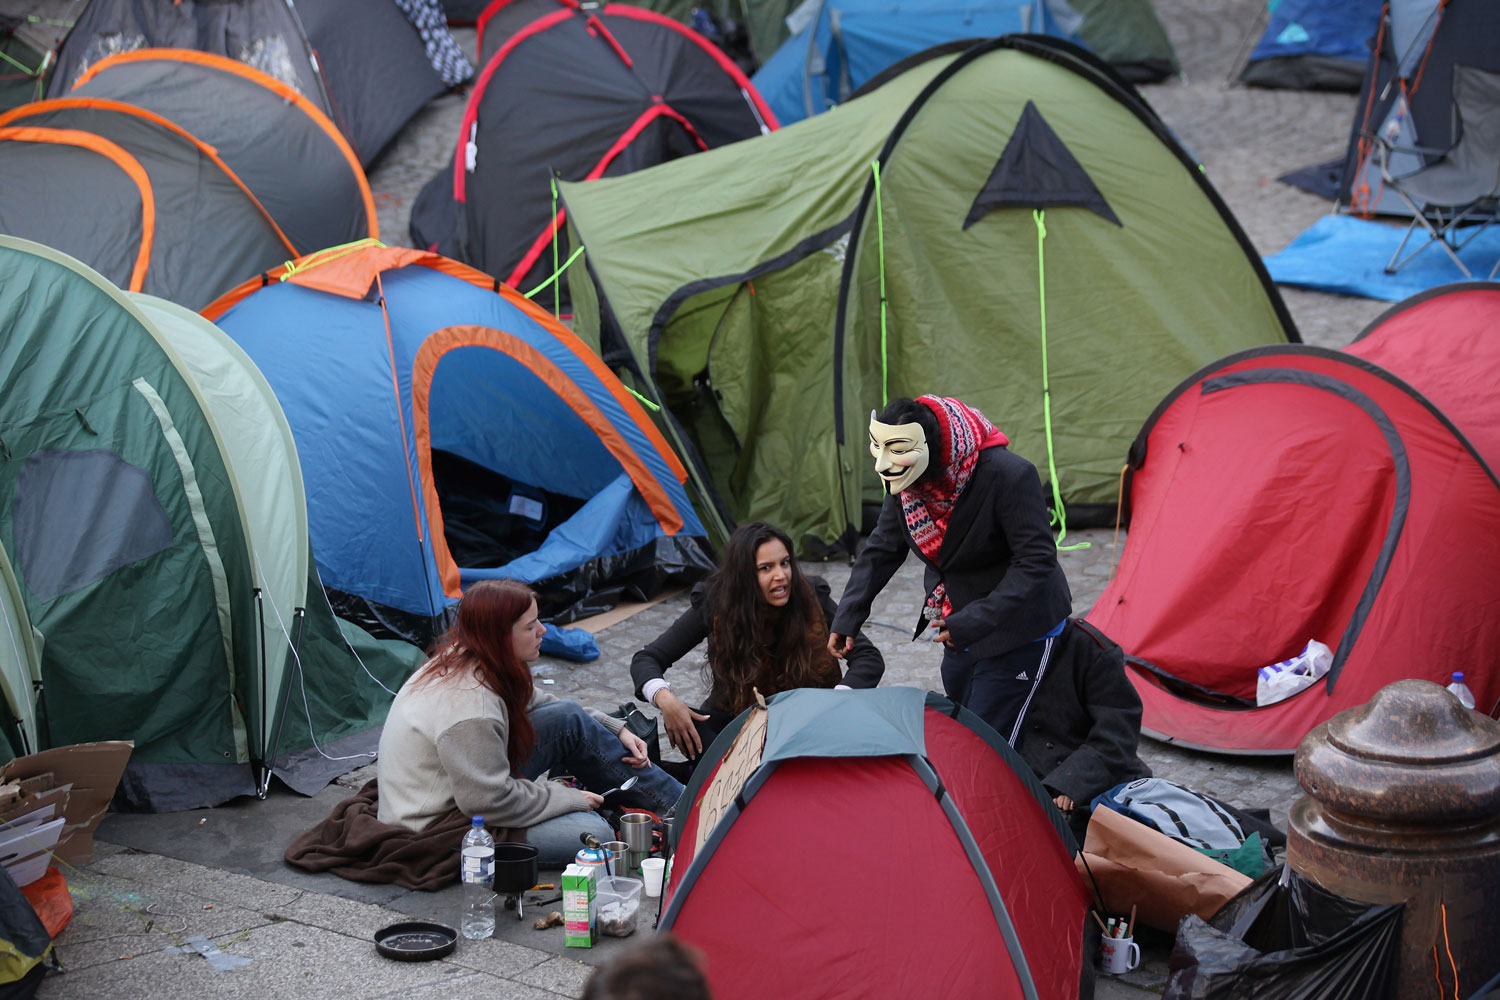 October 17, 2011. Tents are pitched in front of St Paul's Cathedral on the third day of a protest to occupy the London Stock Exchange in London, England. The demonstration, which is targeting corporate greed, stemmed from the  Occupy Wall Street  movement in New York and has spread to the financial districts of cities around the world.